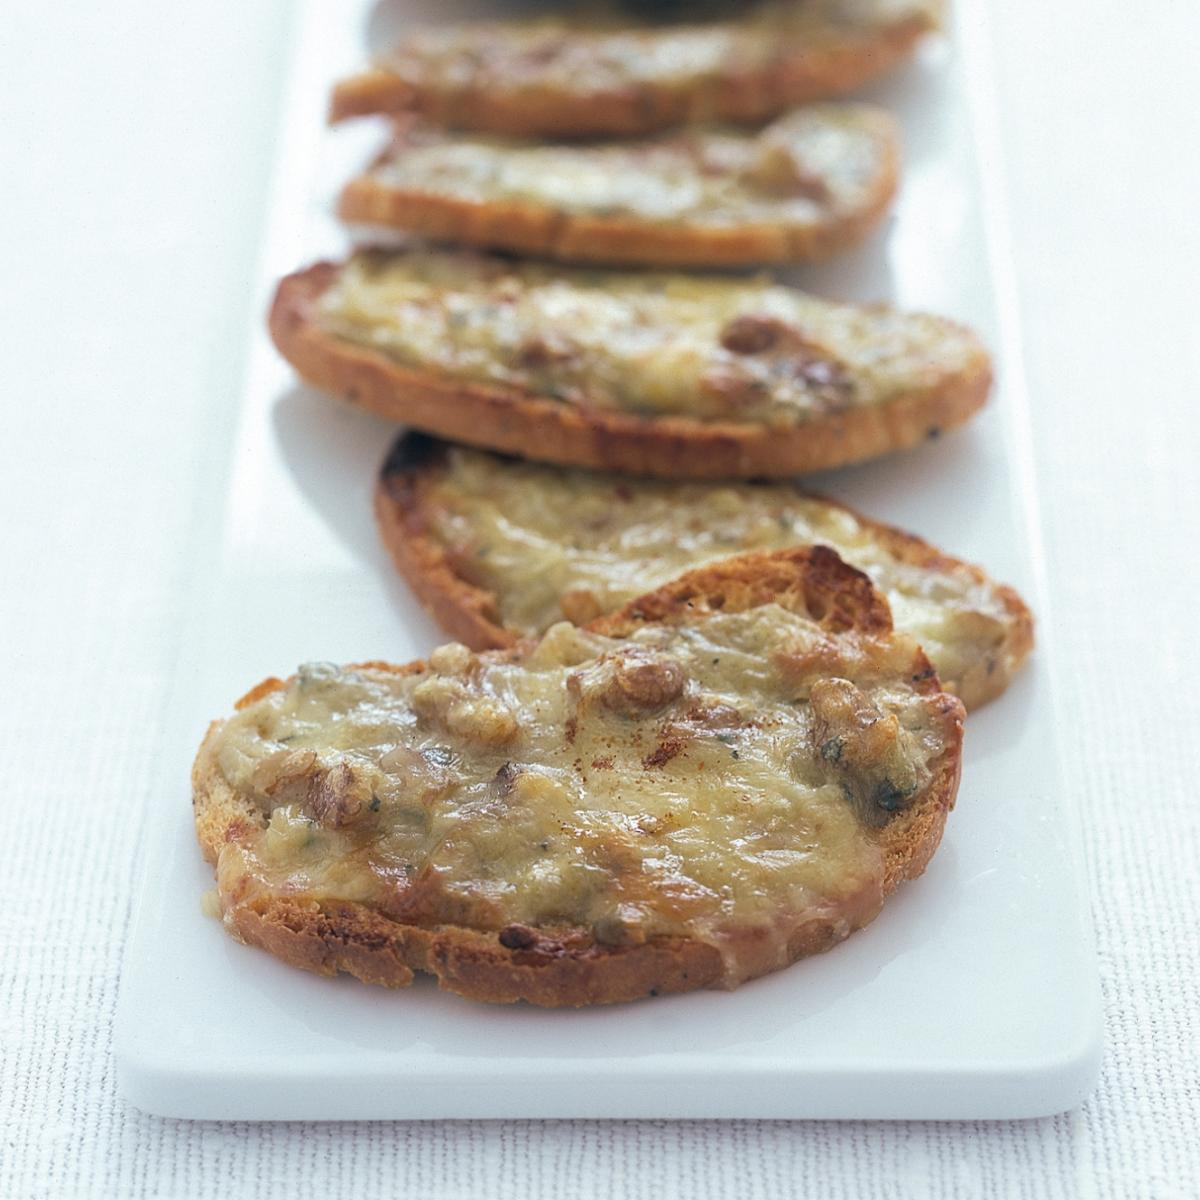 A picture of Delia's Stilton Rarebit recipe